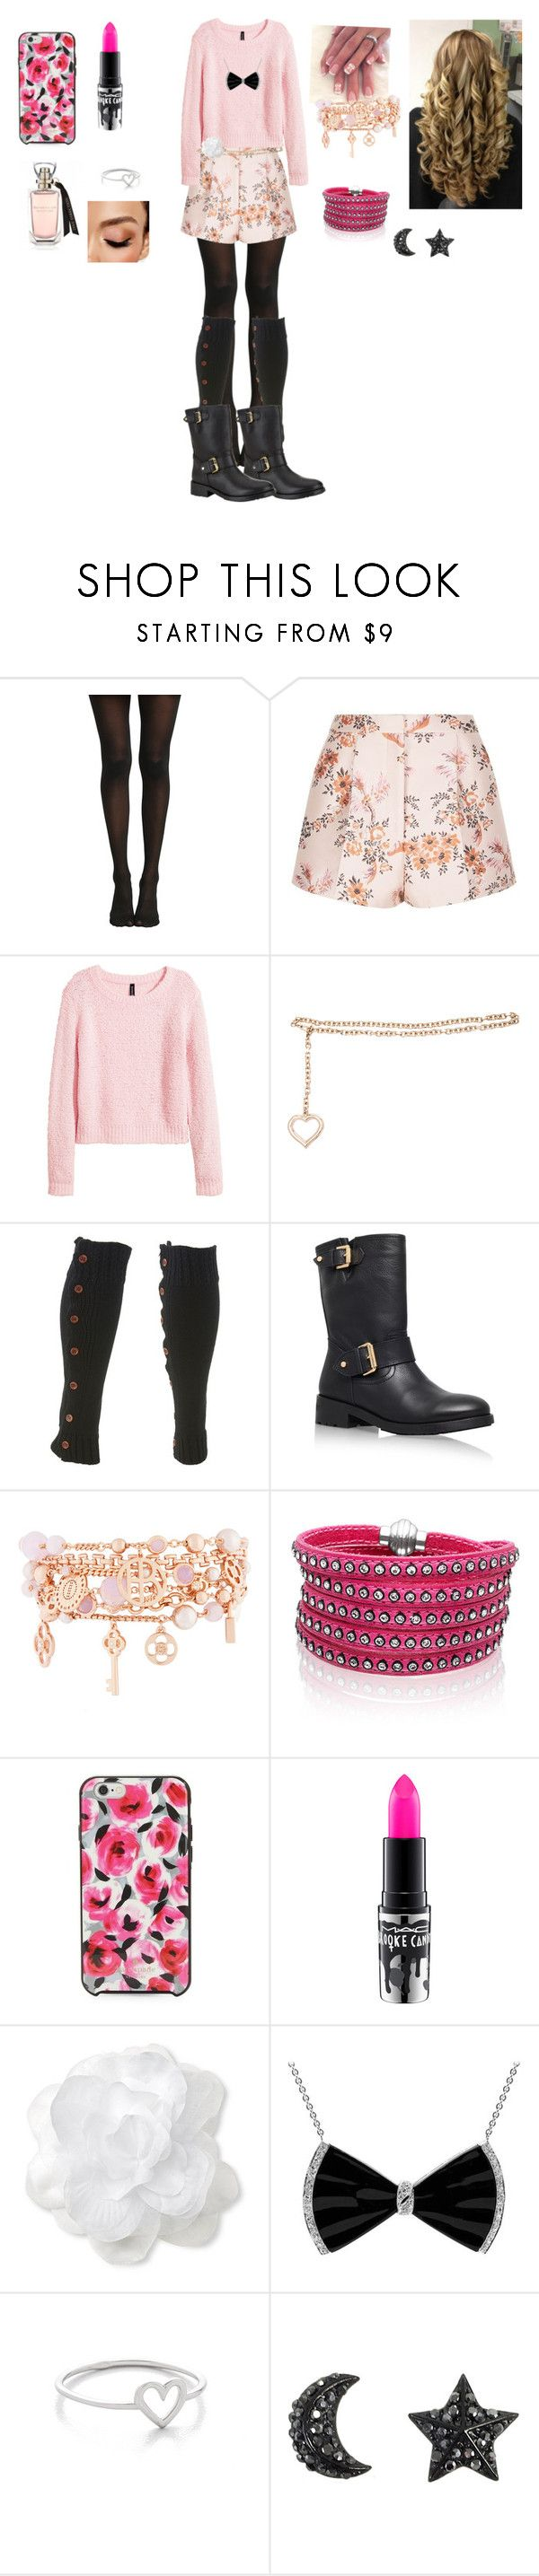 """Untitled #12"" by pinky731 ❤ liked on Polyvore featuring Hot Topic, STELLA McCARTNEY, H&M, Alessandra Rich, Charlotte Russe, Kurt Geiger, Henri Bendel, Sif Jakobs Jewellery, Kate Spade and MAC Cosmetics"